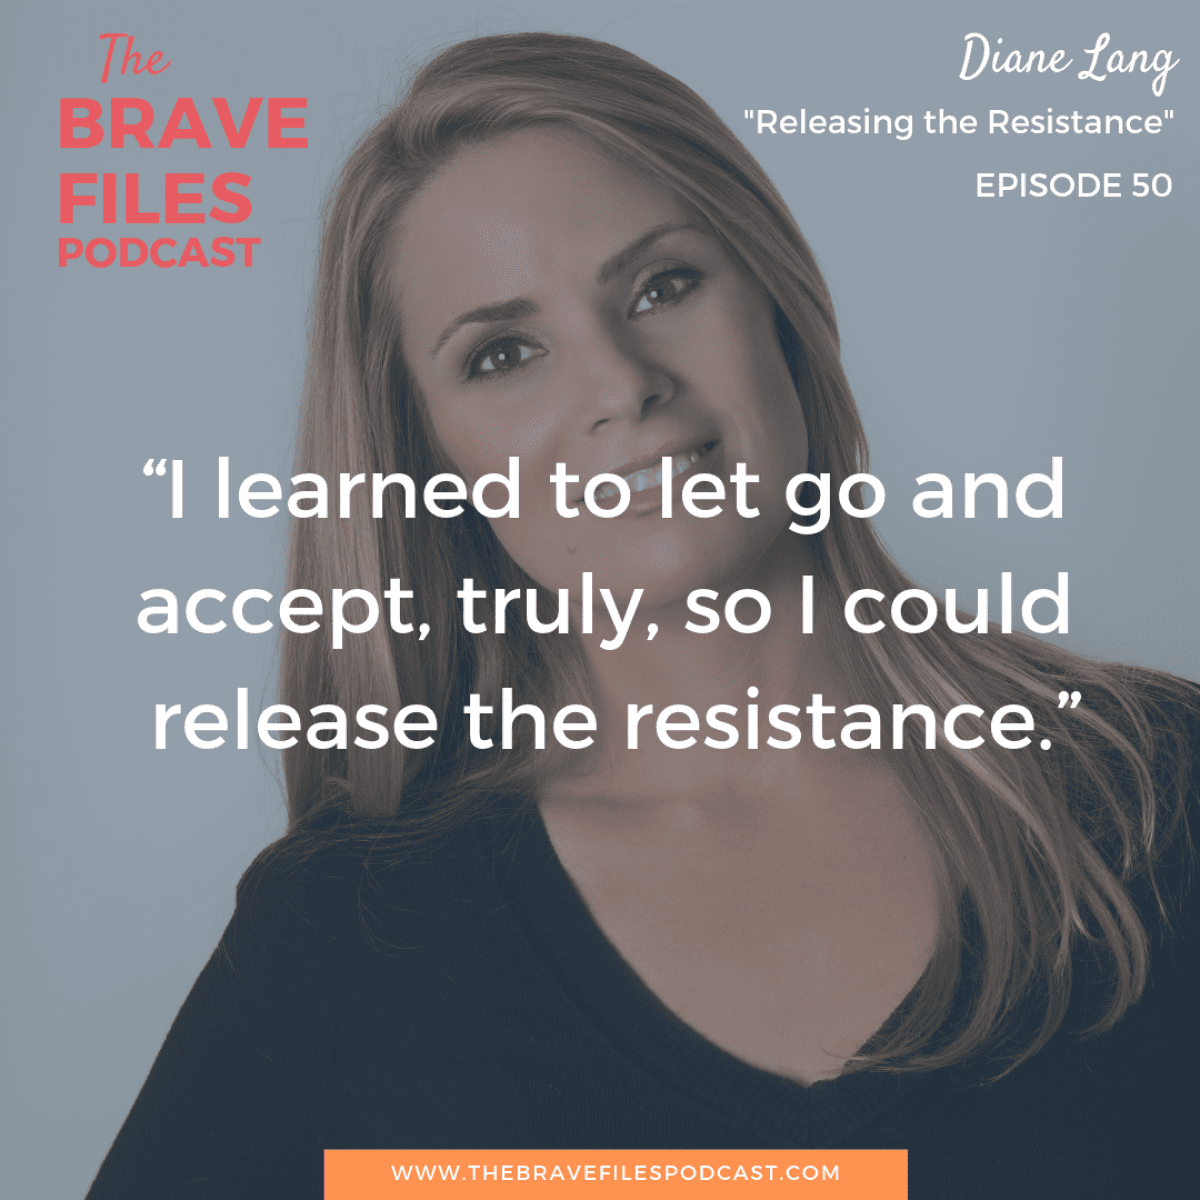 Diane Lang joins The Brave Files Podcast to talk about debilitating illness and how to live with more empathy, kindness, and compassion no matter what you are experiencing in life